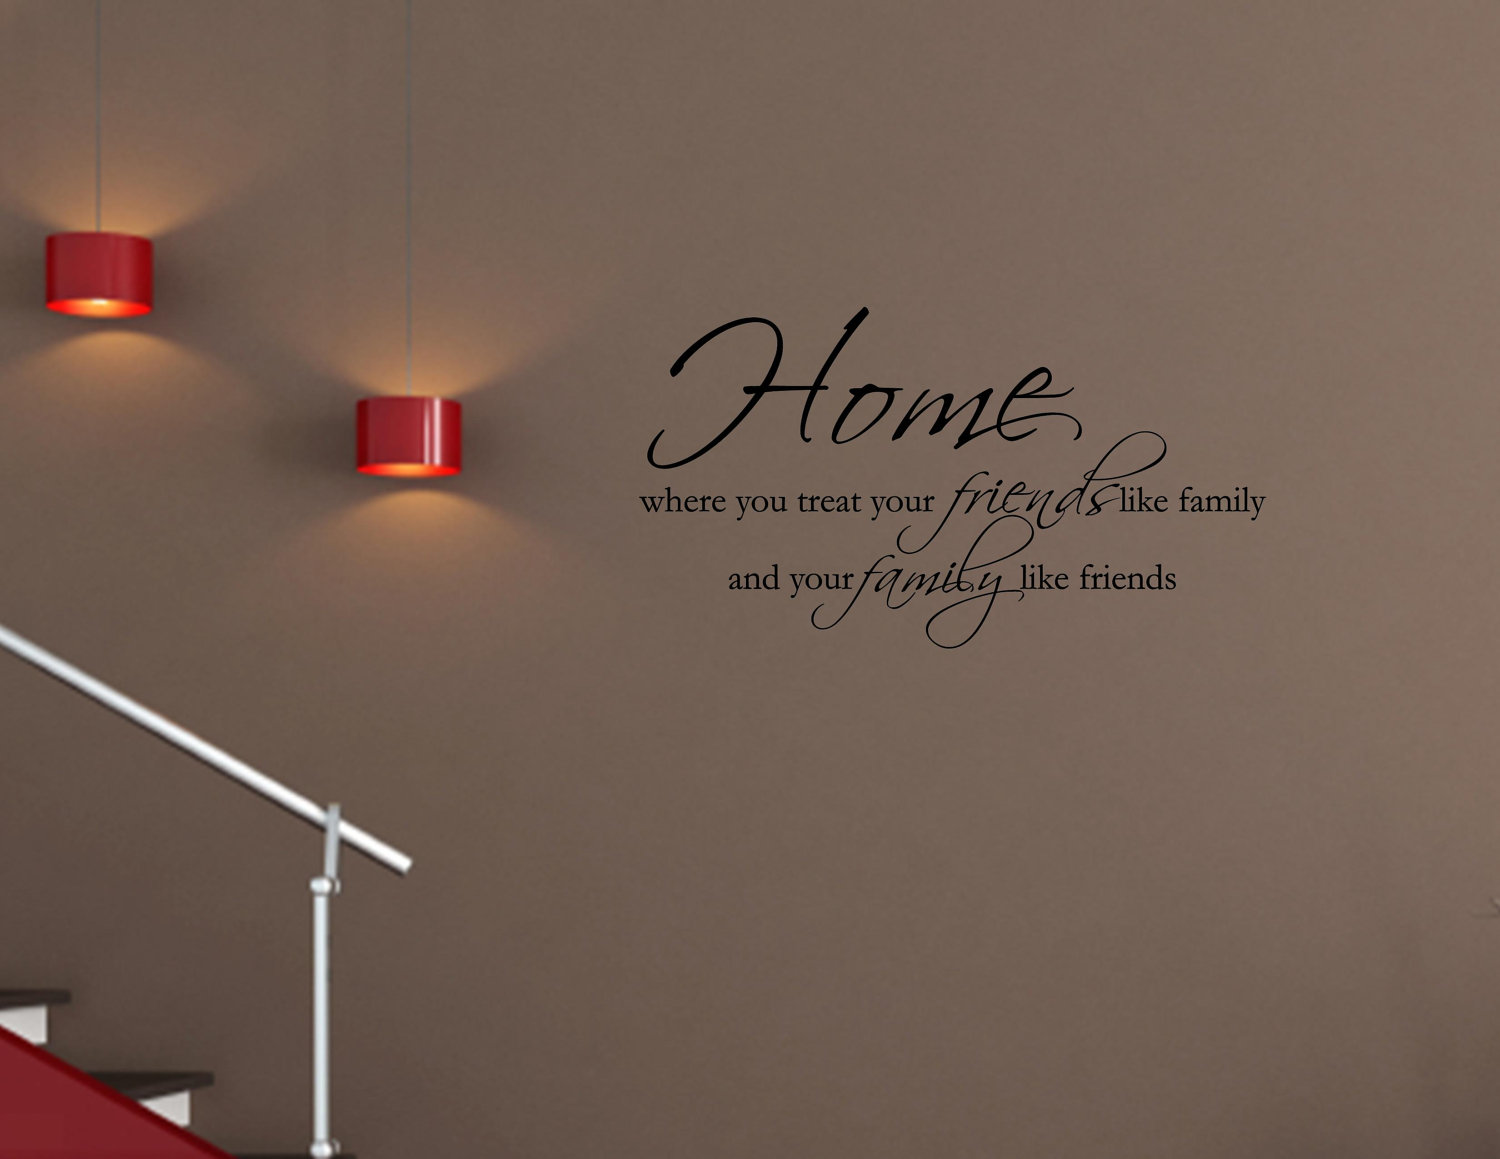 Quotes About Your Home. QuotesGram